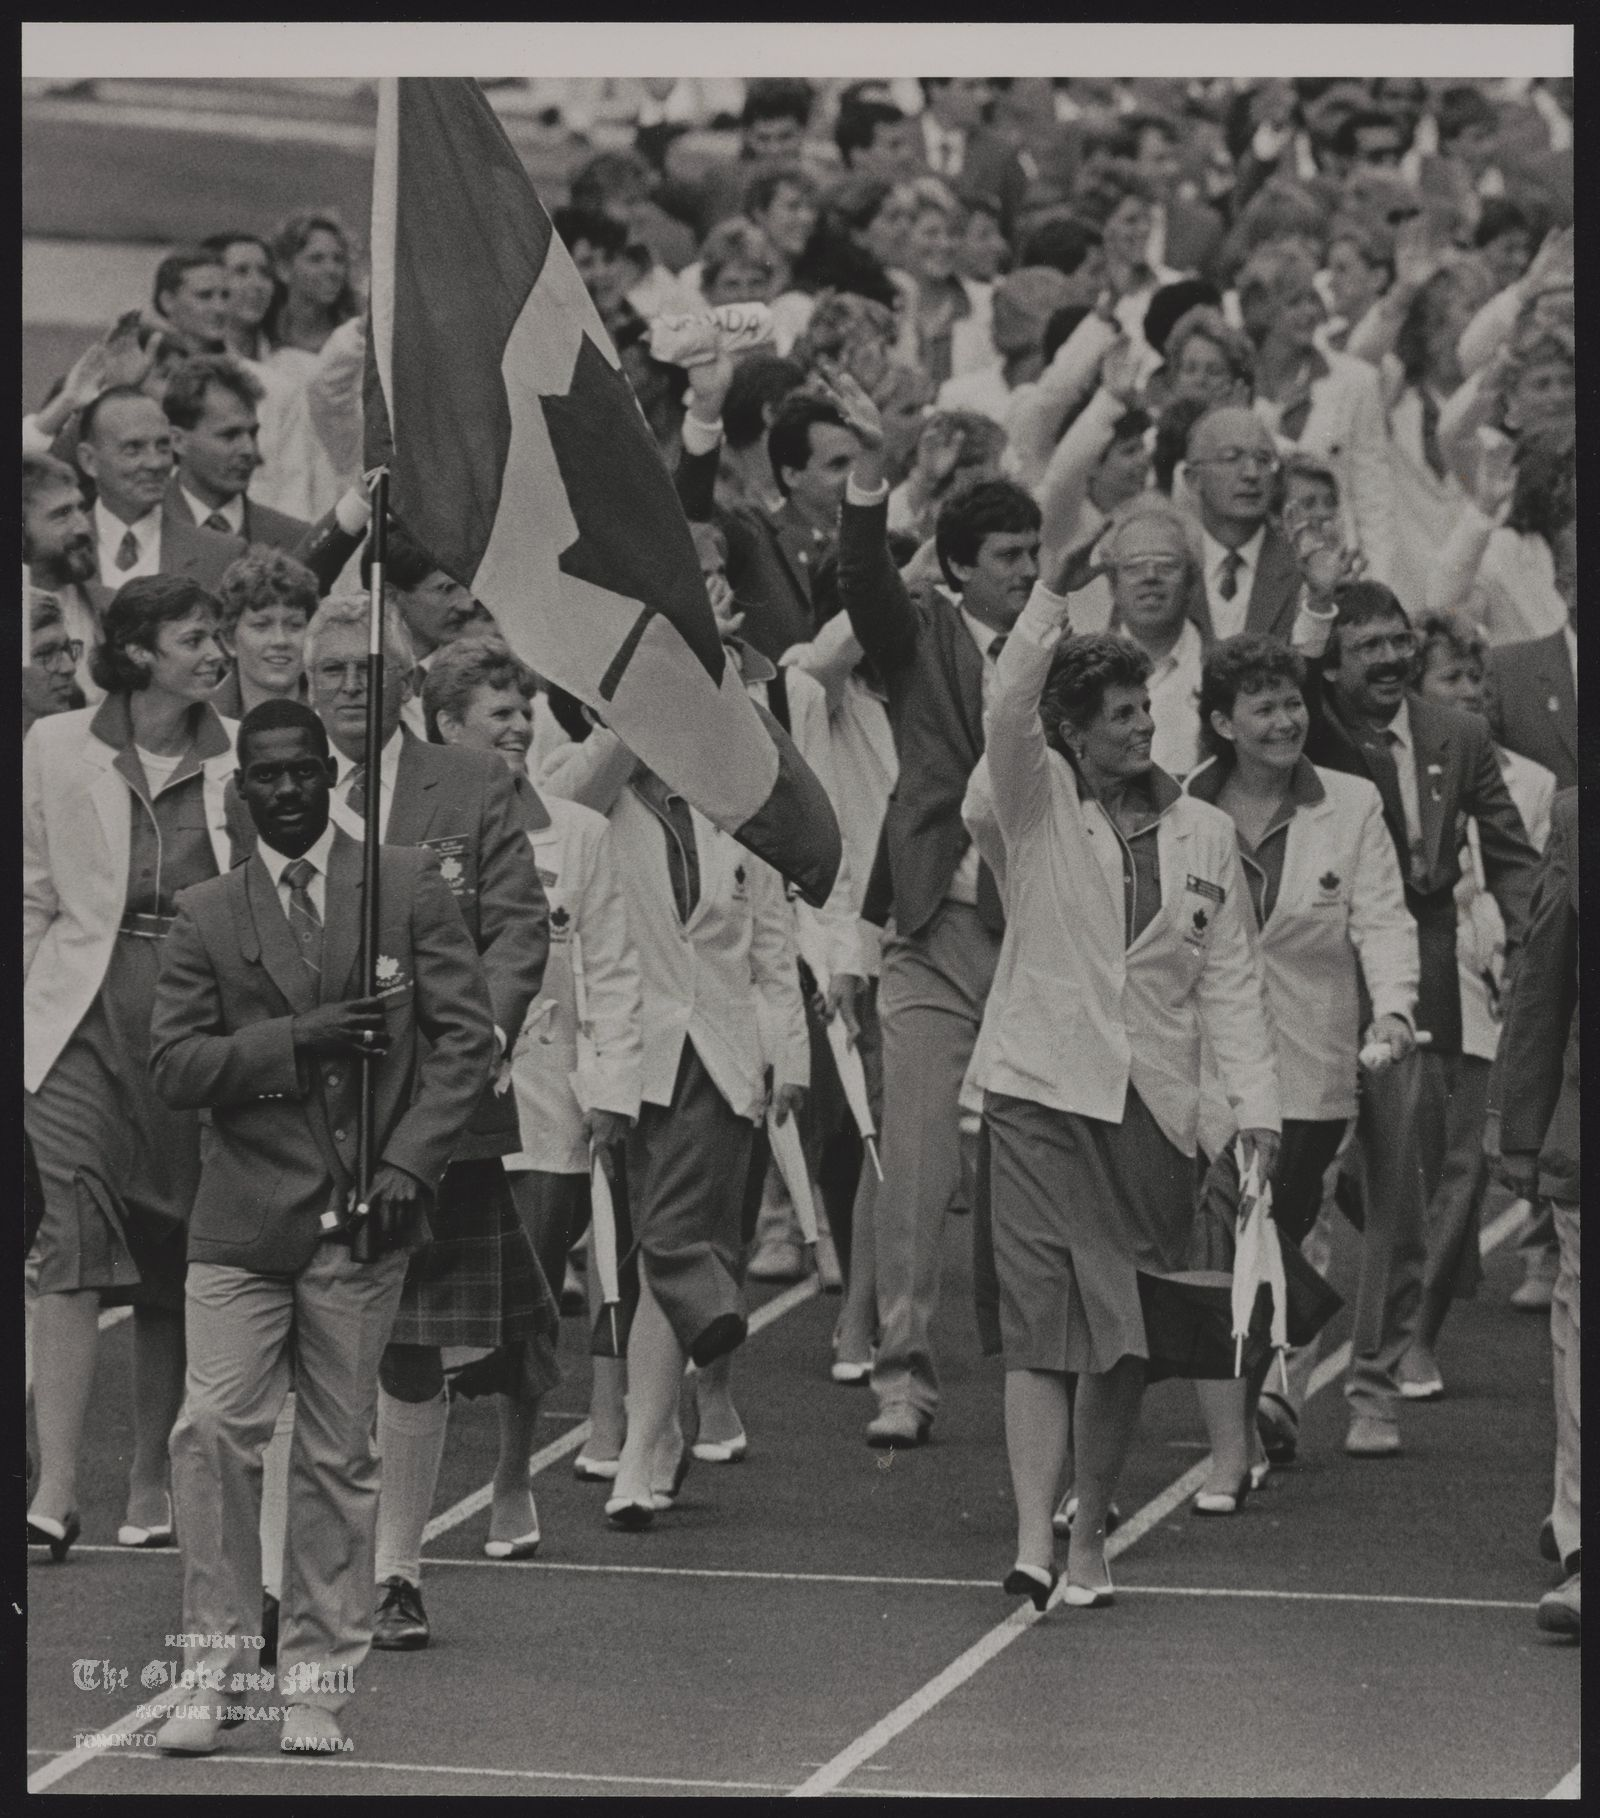 COMMONWEALTH GAMES EDINBURGH 1986 EDIO6:SPECIAL FOR THE GLOBE AND MAIL, CANADA EDINBURGH; SCOTLAND, JULY 24-Canadian flag bearer Ben Johnson leads the team onto the field during opening ceremonies here 7/24 REUTER hd/Hans Deryk